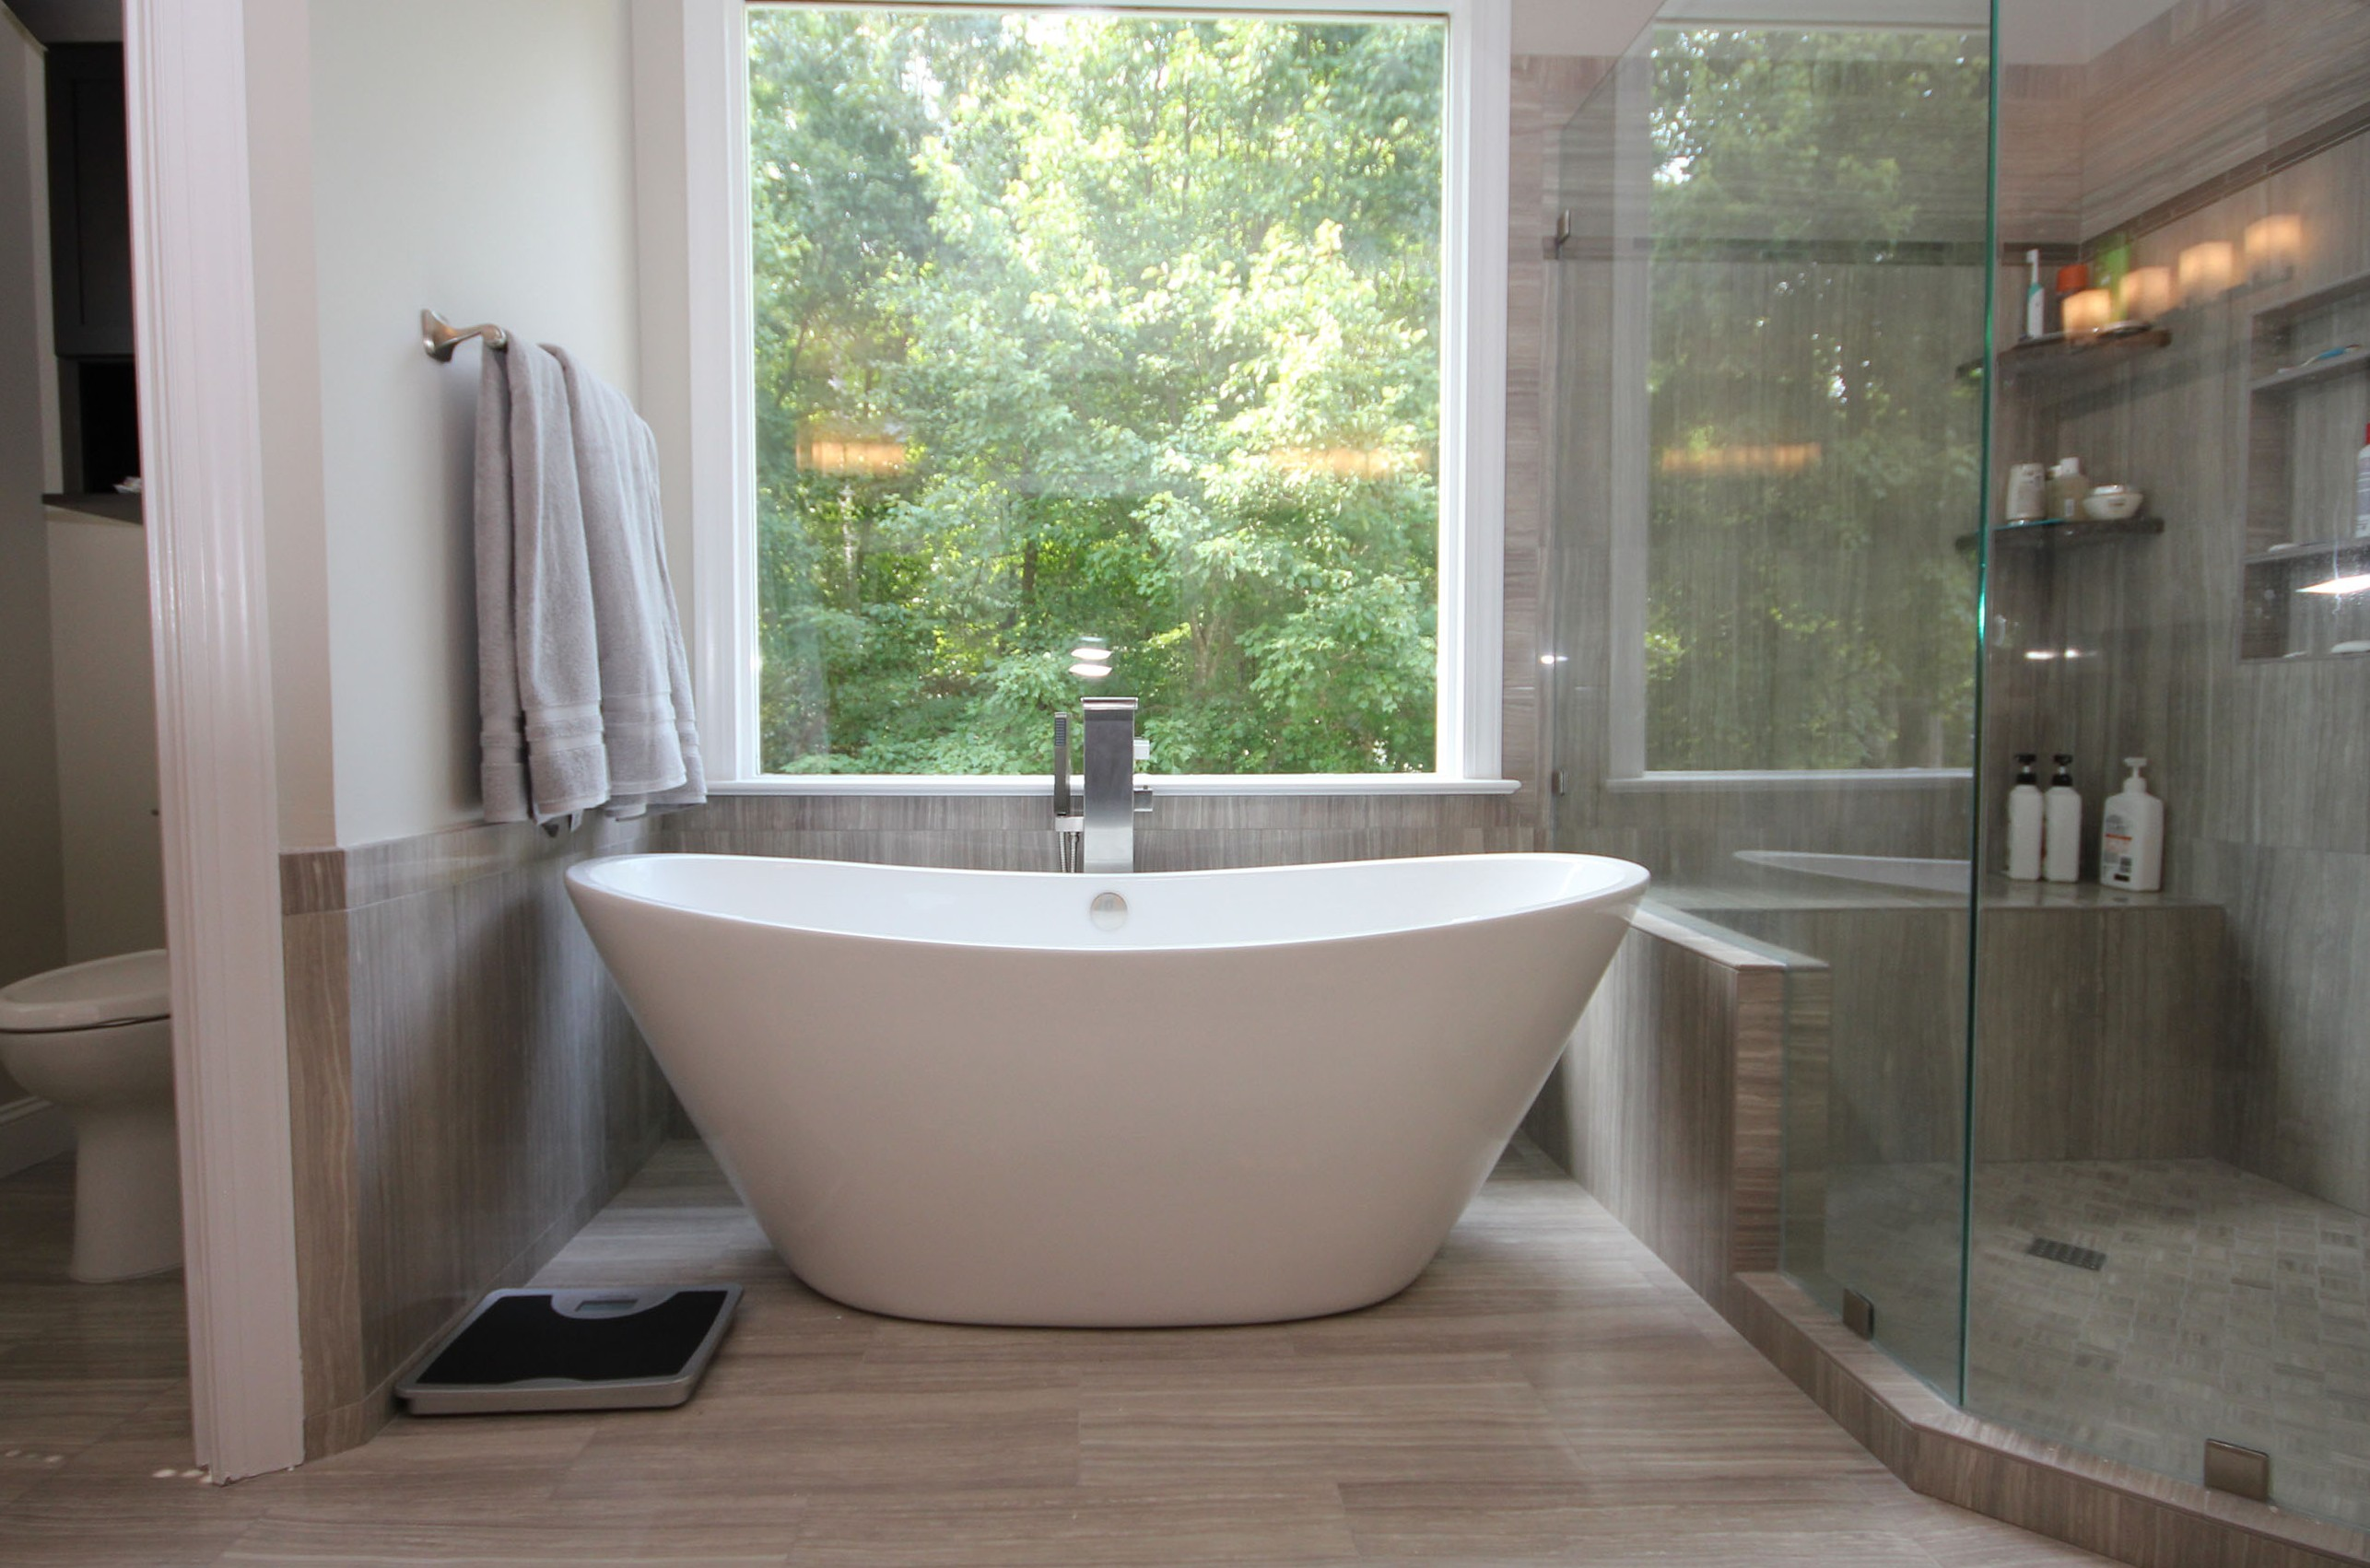 Freestanding Tub In Raleigh Bath Remodel. View Image